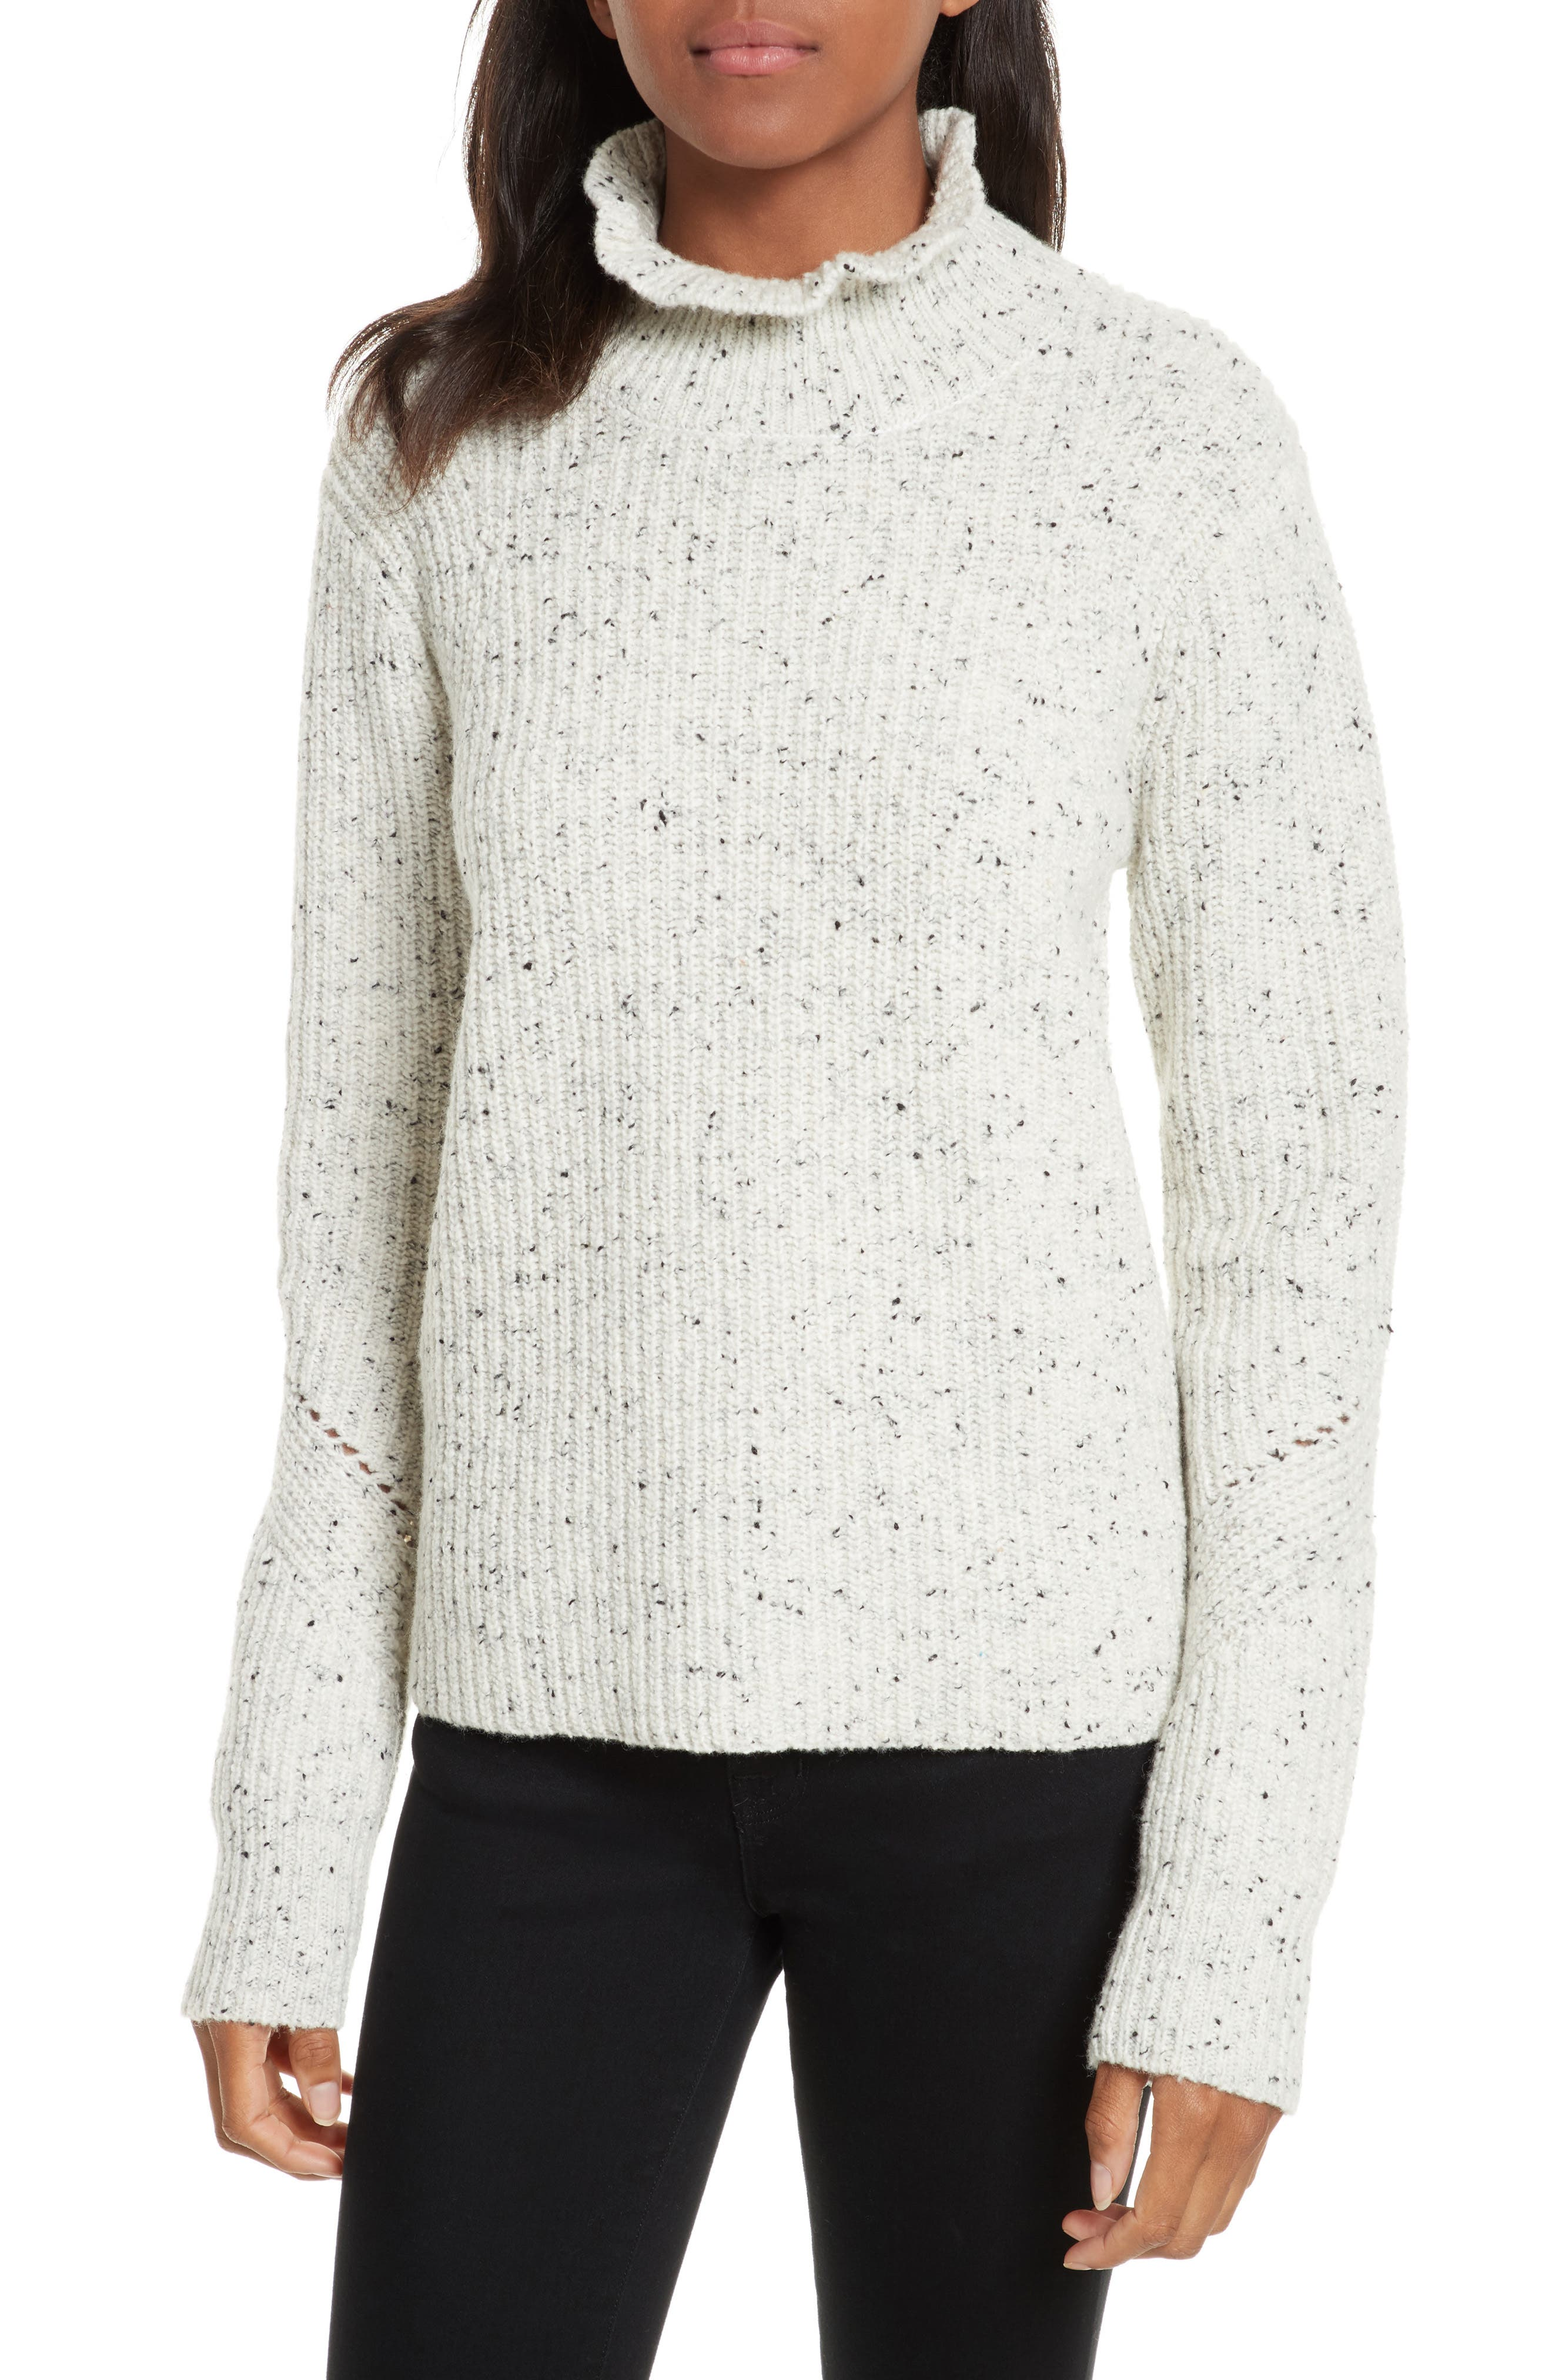 Adaliz Ribbed Ruffle Neck Sweater,                             Main thumbnail 1, color,                             114